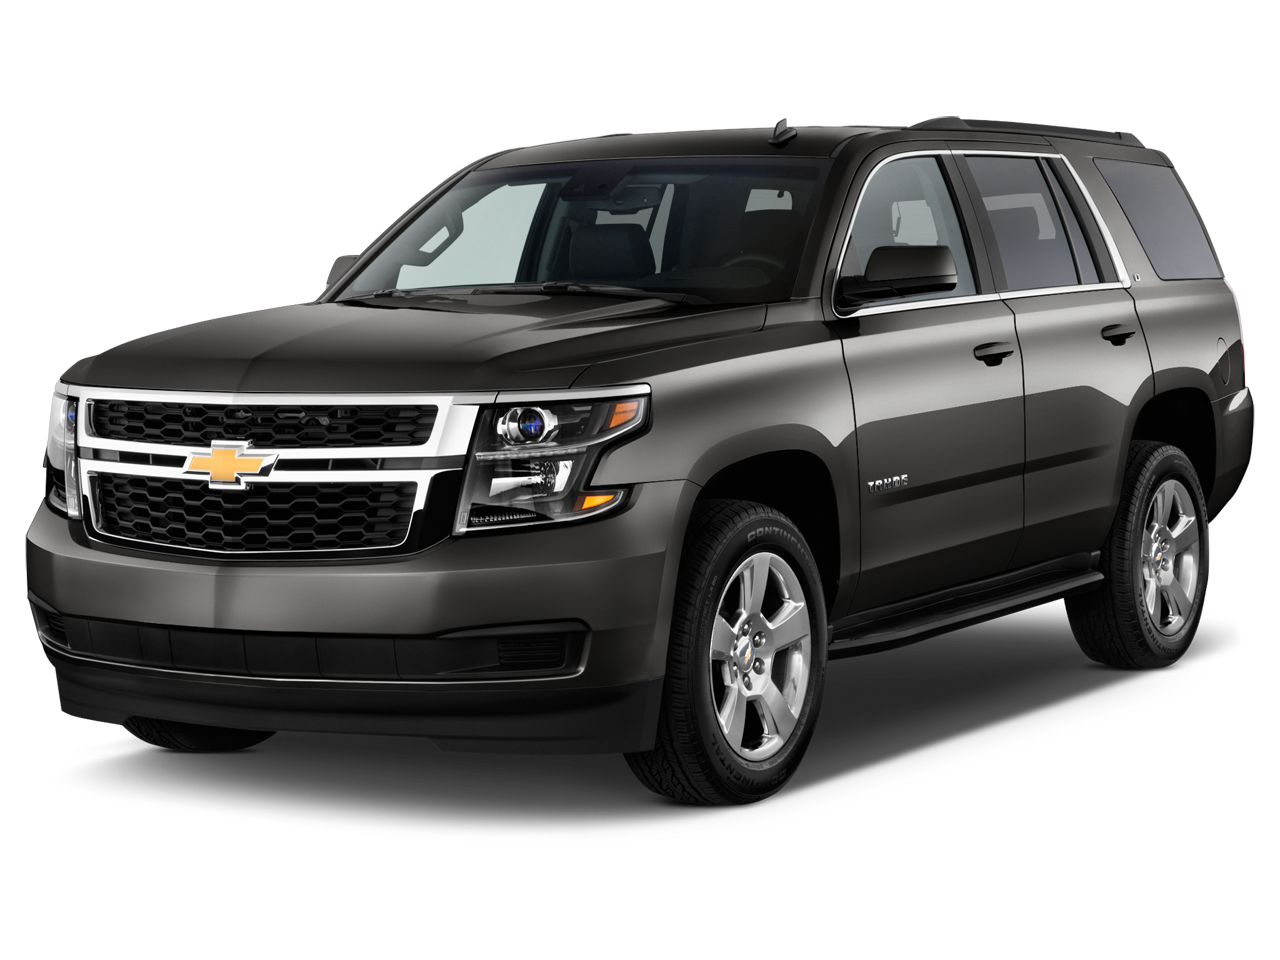 new 2017 chevrolet tahoe lt near selma ca selma auto mall. Black Bedroom Furniture Sets. Home Design Ideas